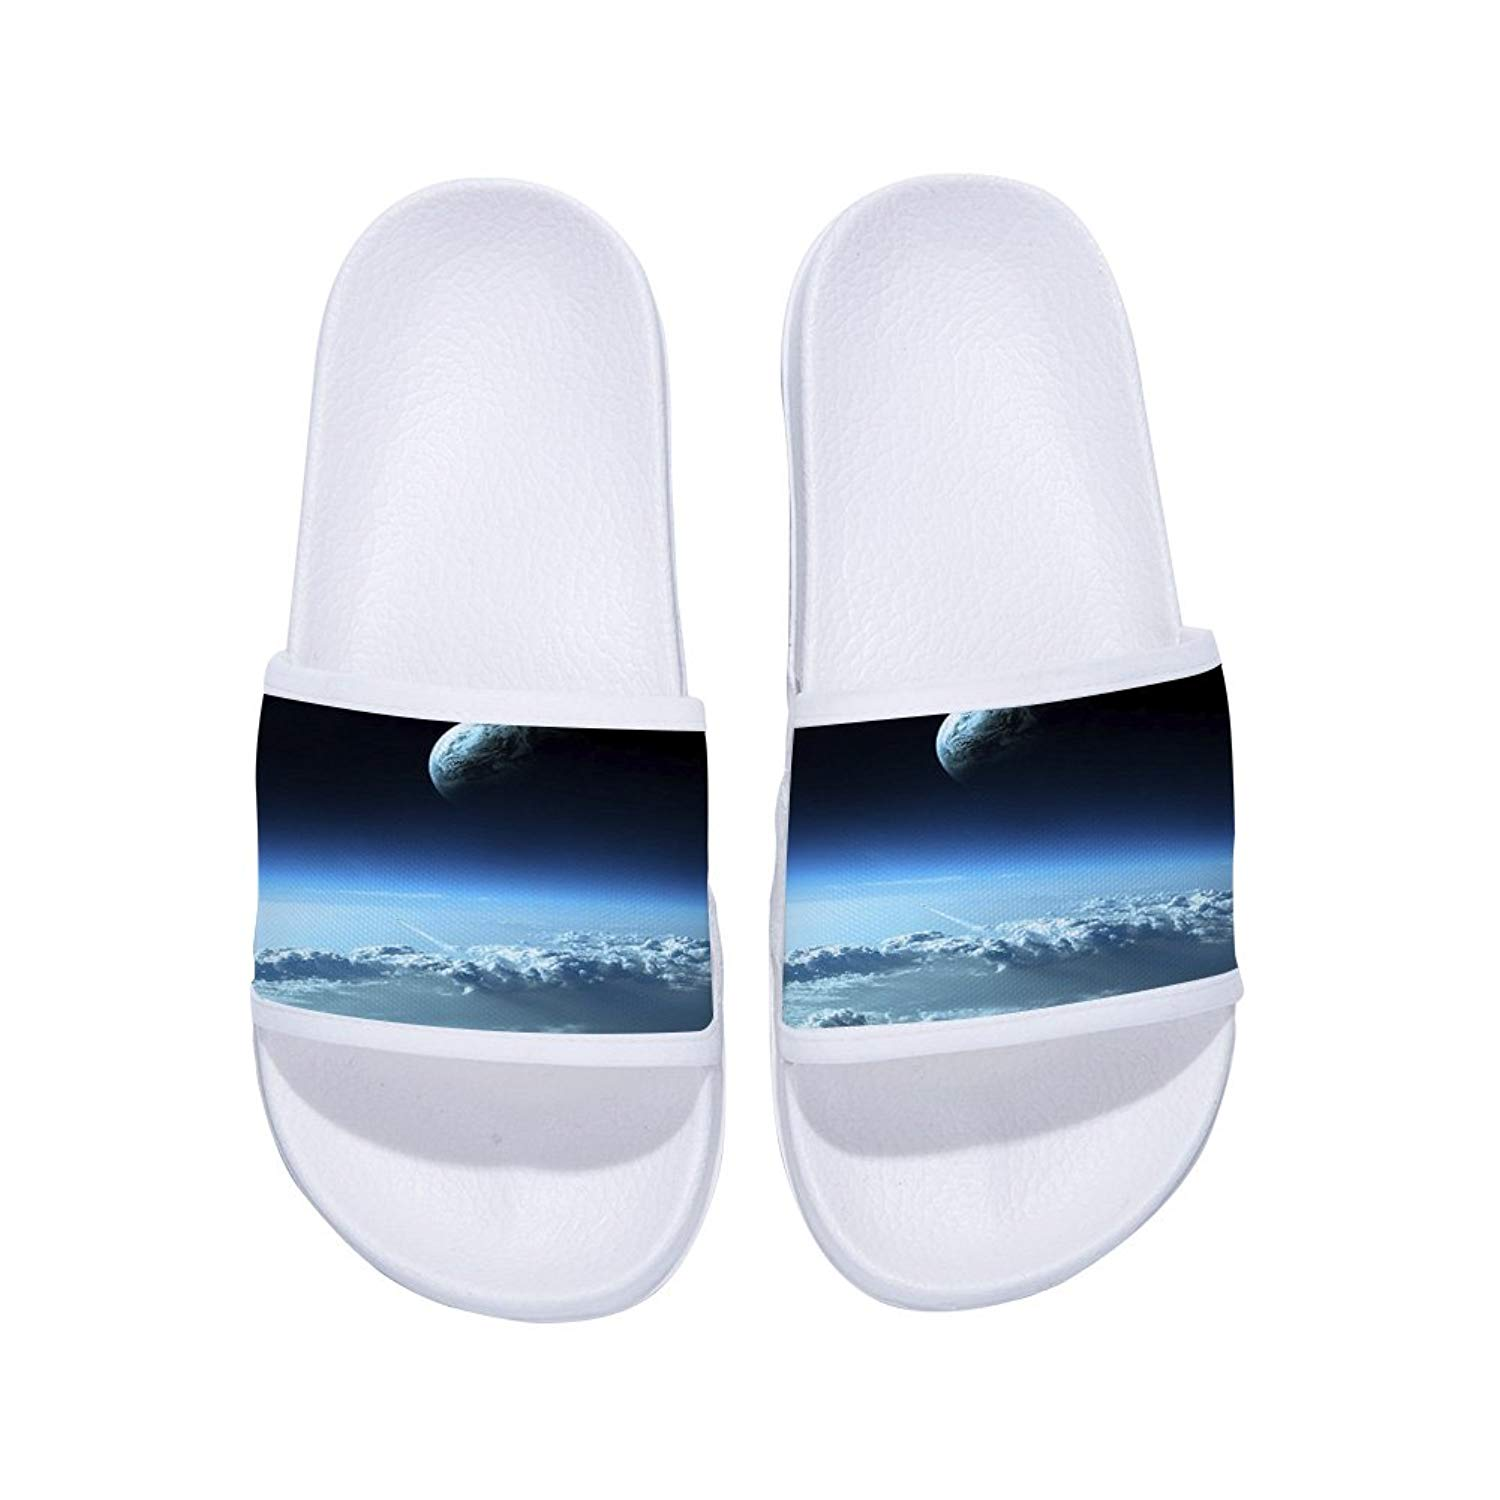 new products d08e7 29ad8 Get Quotations · Jeremy Stone Boys Girls Non-Slip Bathroom Shower Pool  Beach Home Slides Sandal (Little